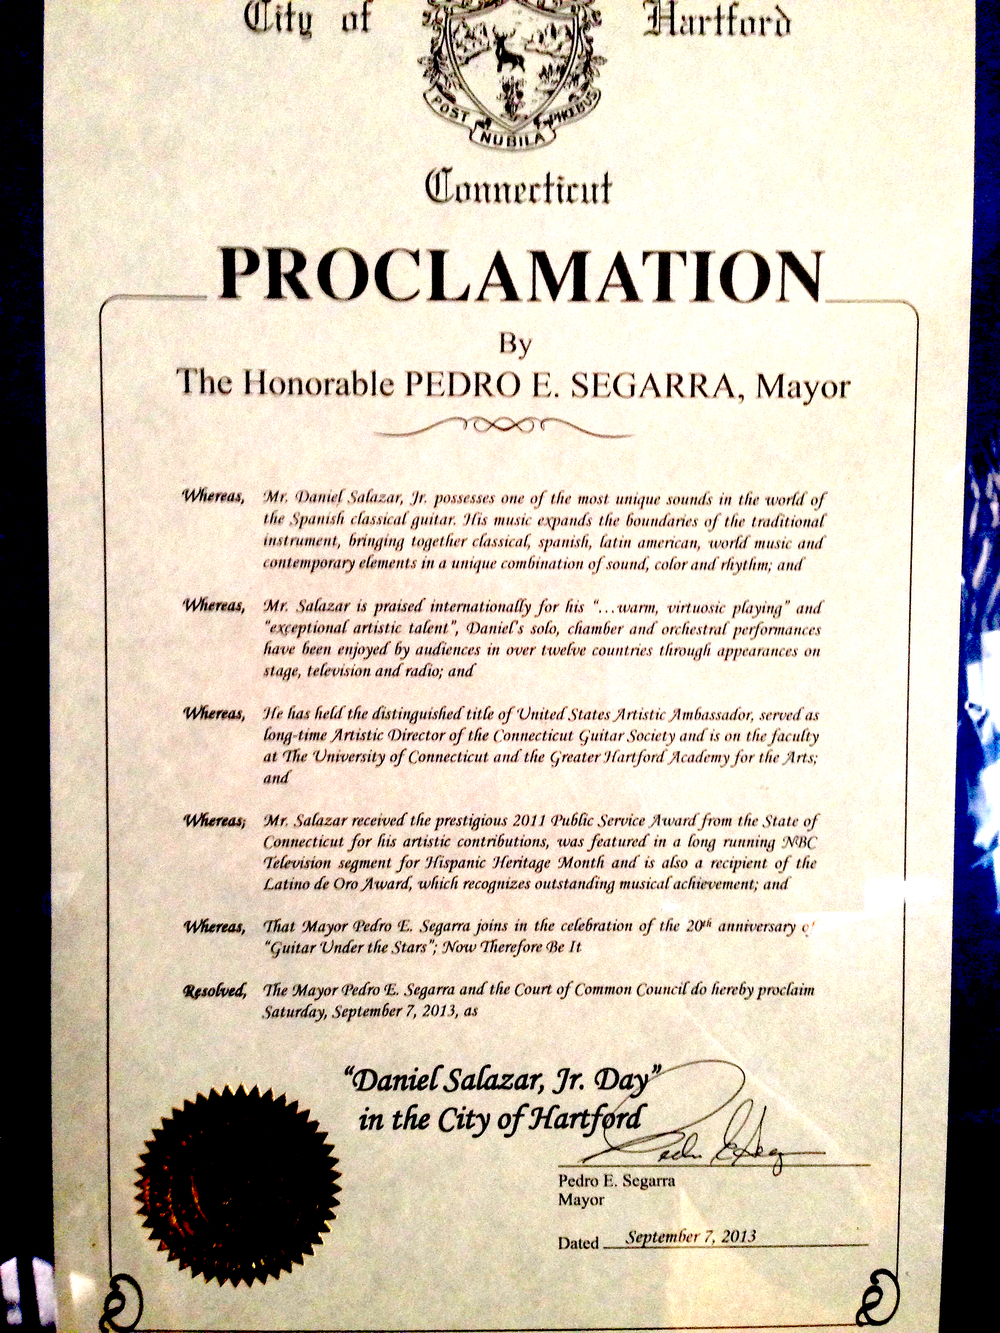 DS-Hartford_Proclamation.jpg